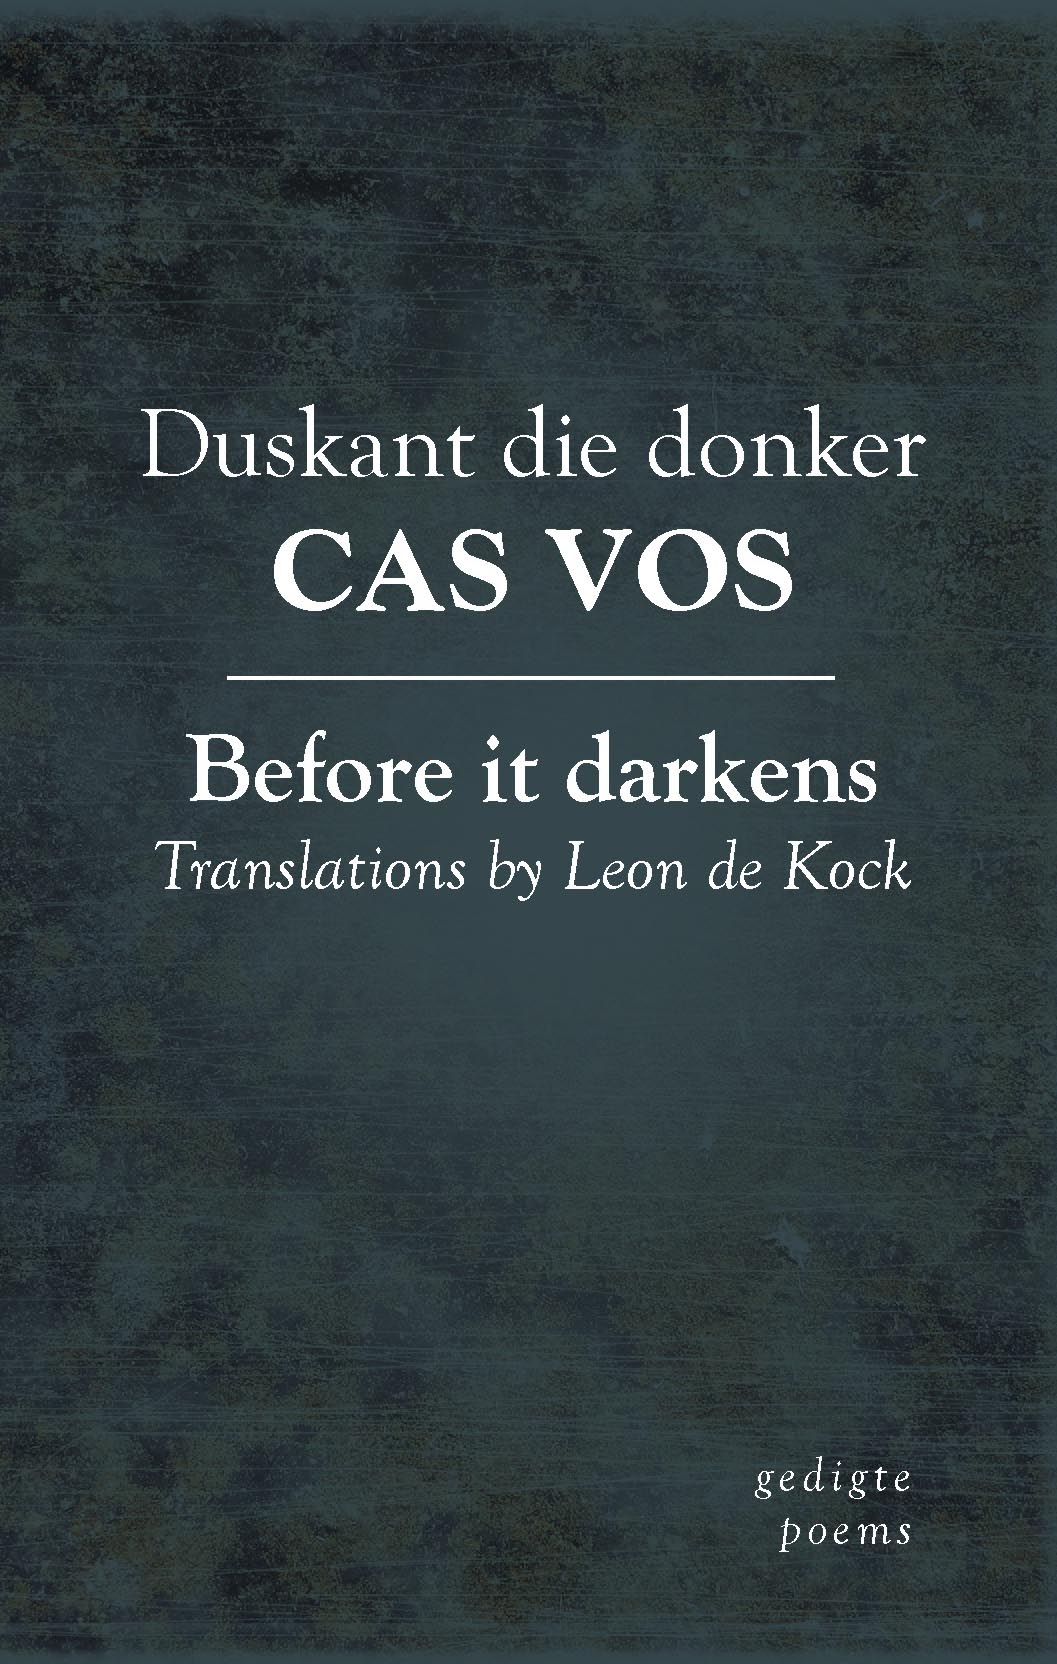 Duskant die donker/Before it darkens